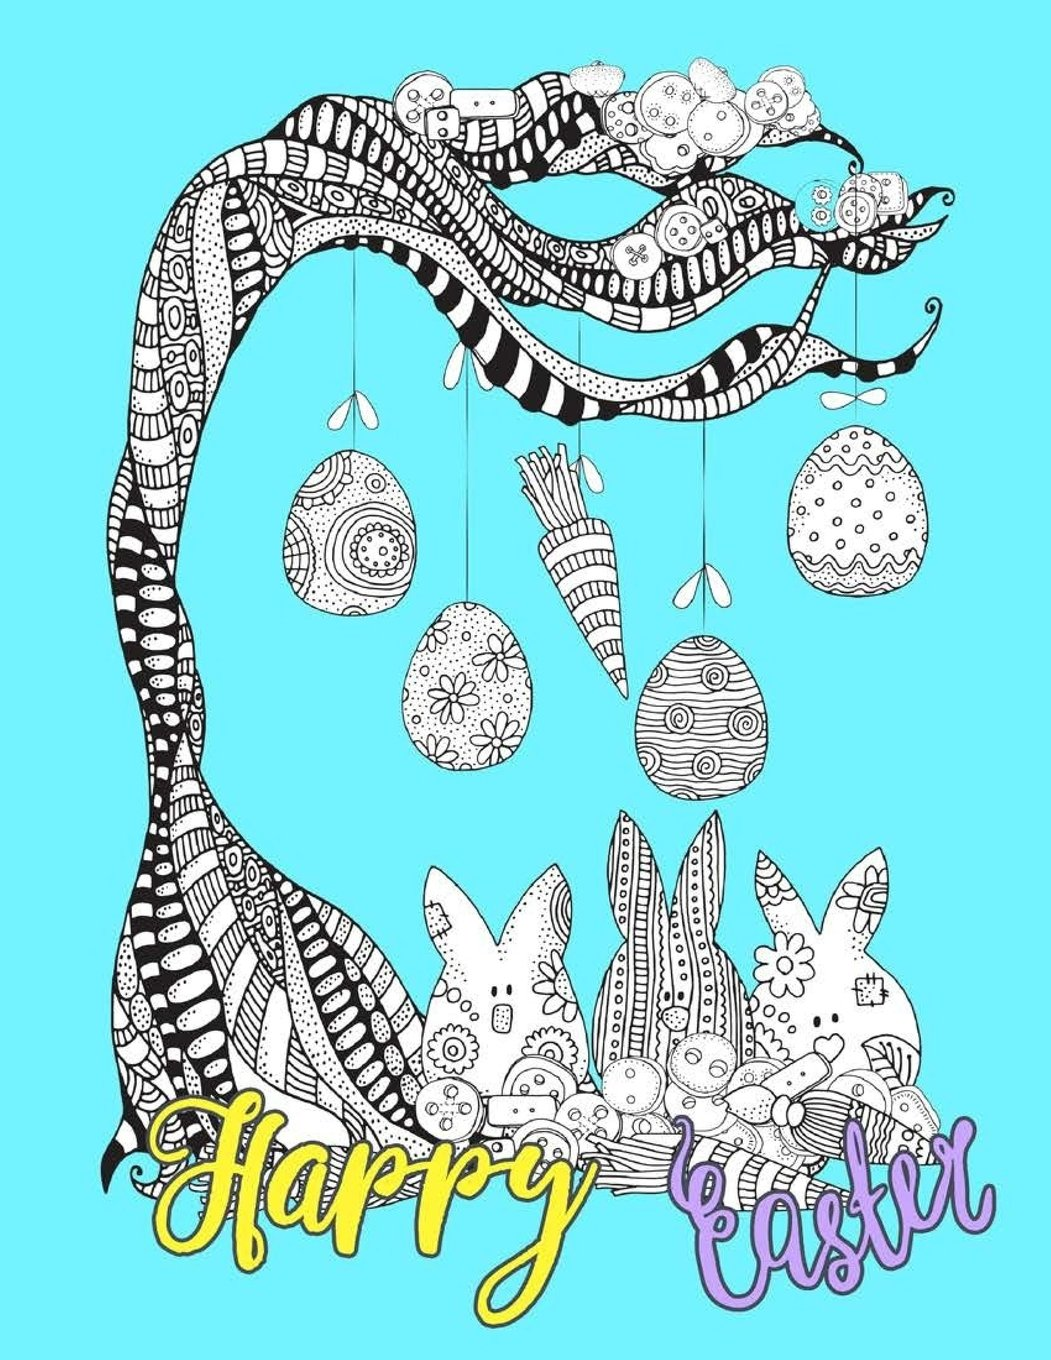 Happy Easter: Egg Easter Coloring Book Pages Large Print One Sided Stress Relieving, Relaxing Coloring Book For Grownups, Women, Girls & Youths. Fun ... Coloring Book For Adults And Kids) (Volume 1) PDF